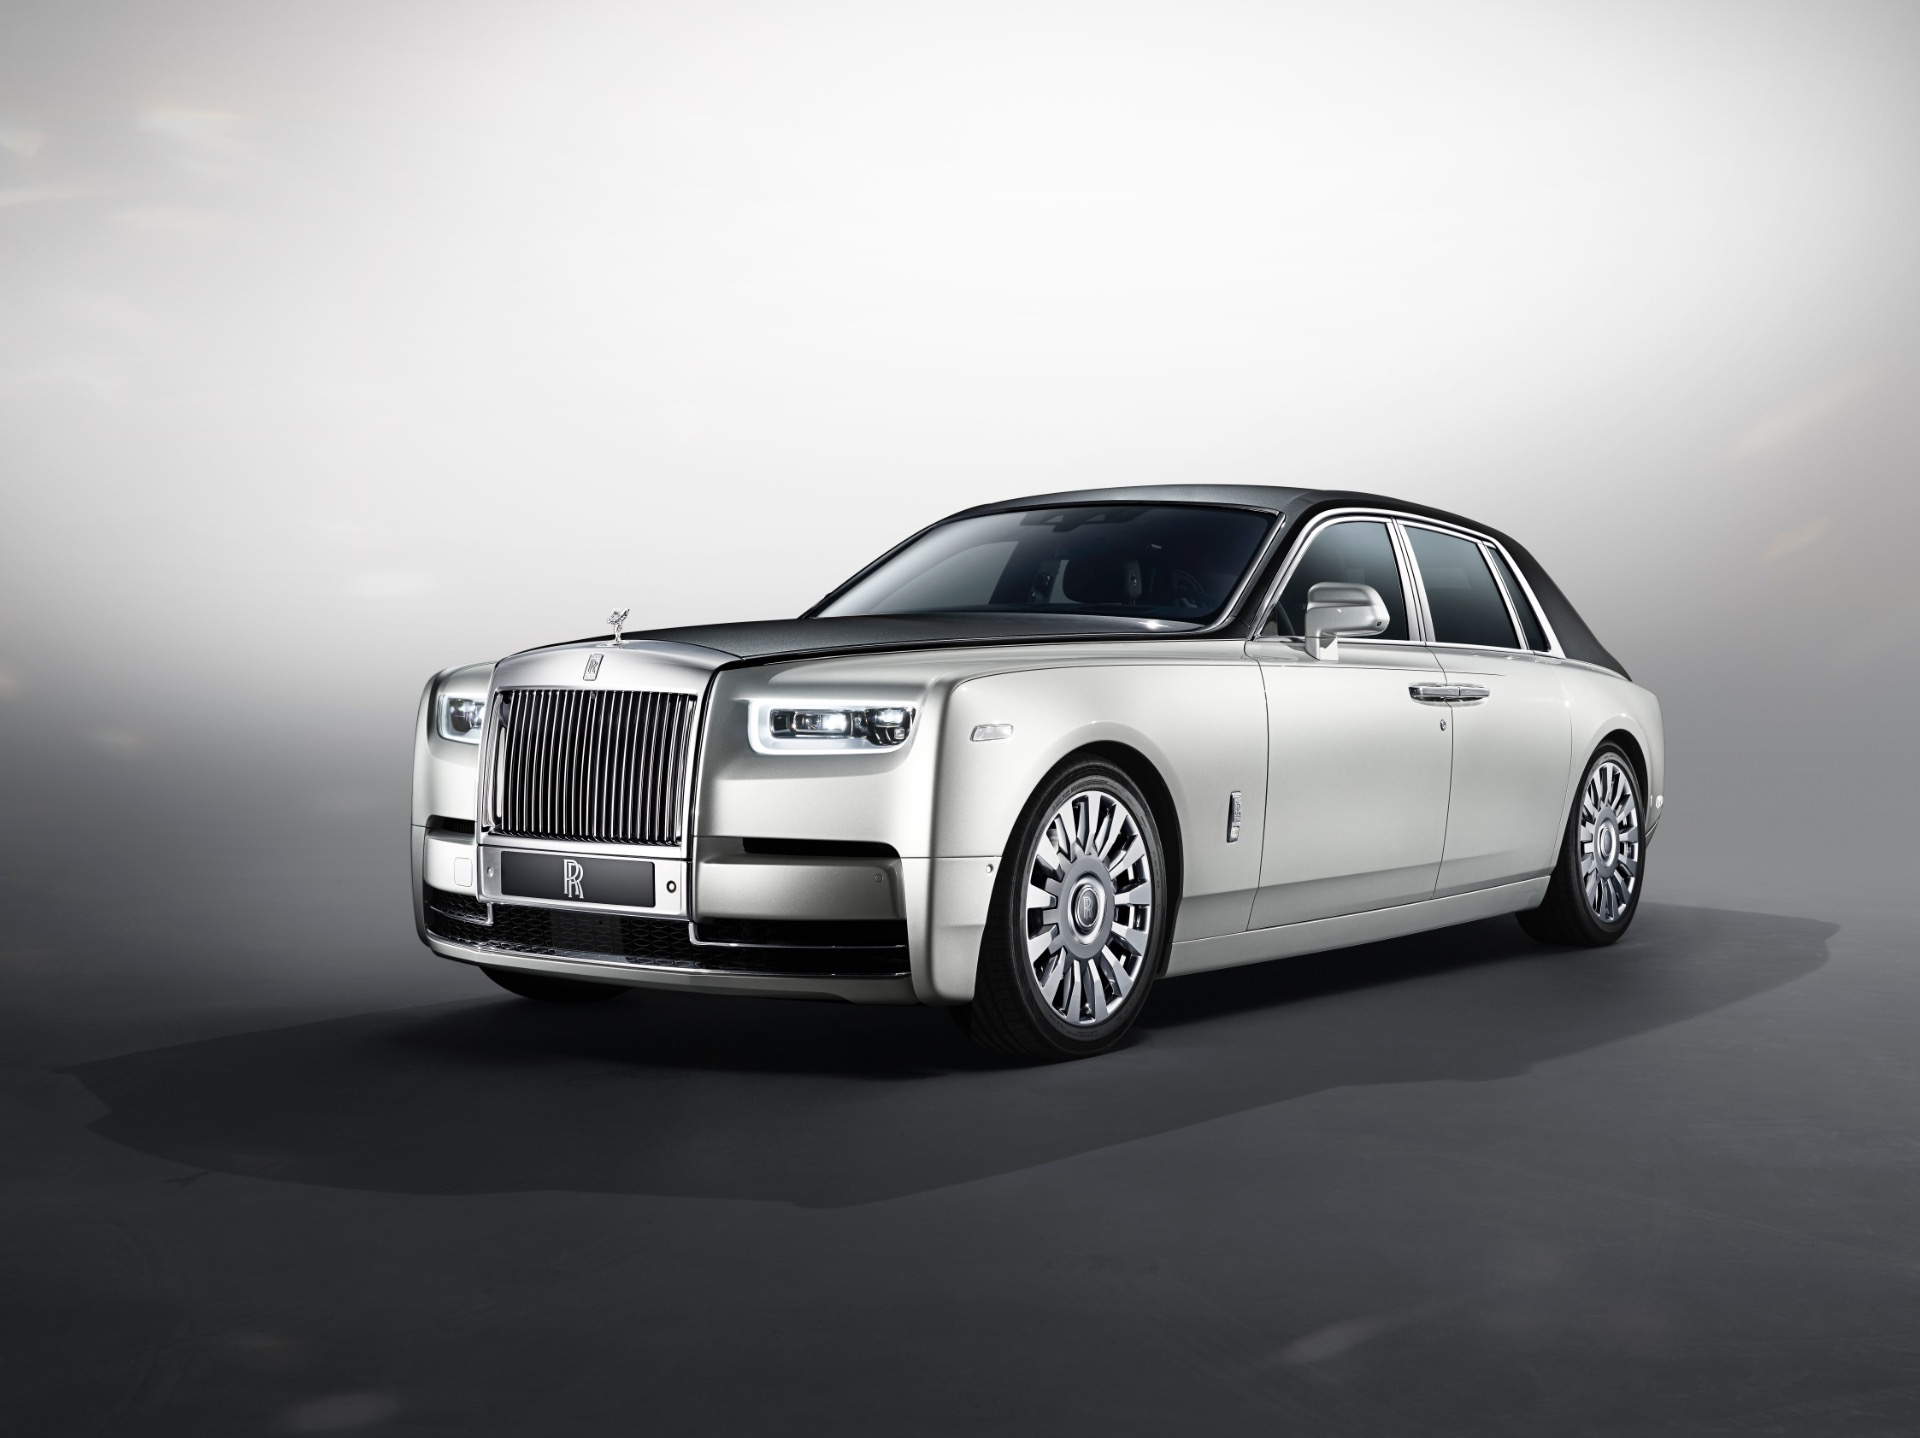 new 2018 rolls royce phantom taking orders now greenwich ct. Black Bedroom Furniture Sets. Home Design Ideas